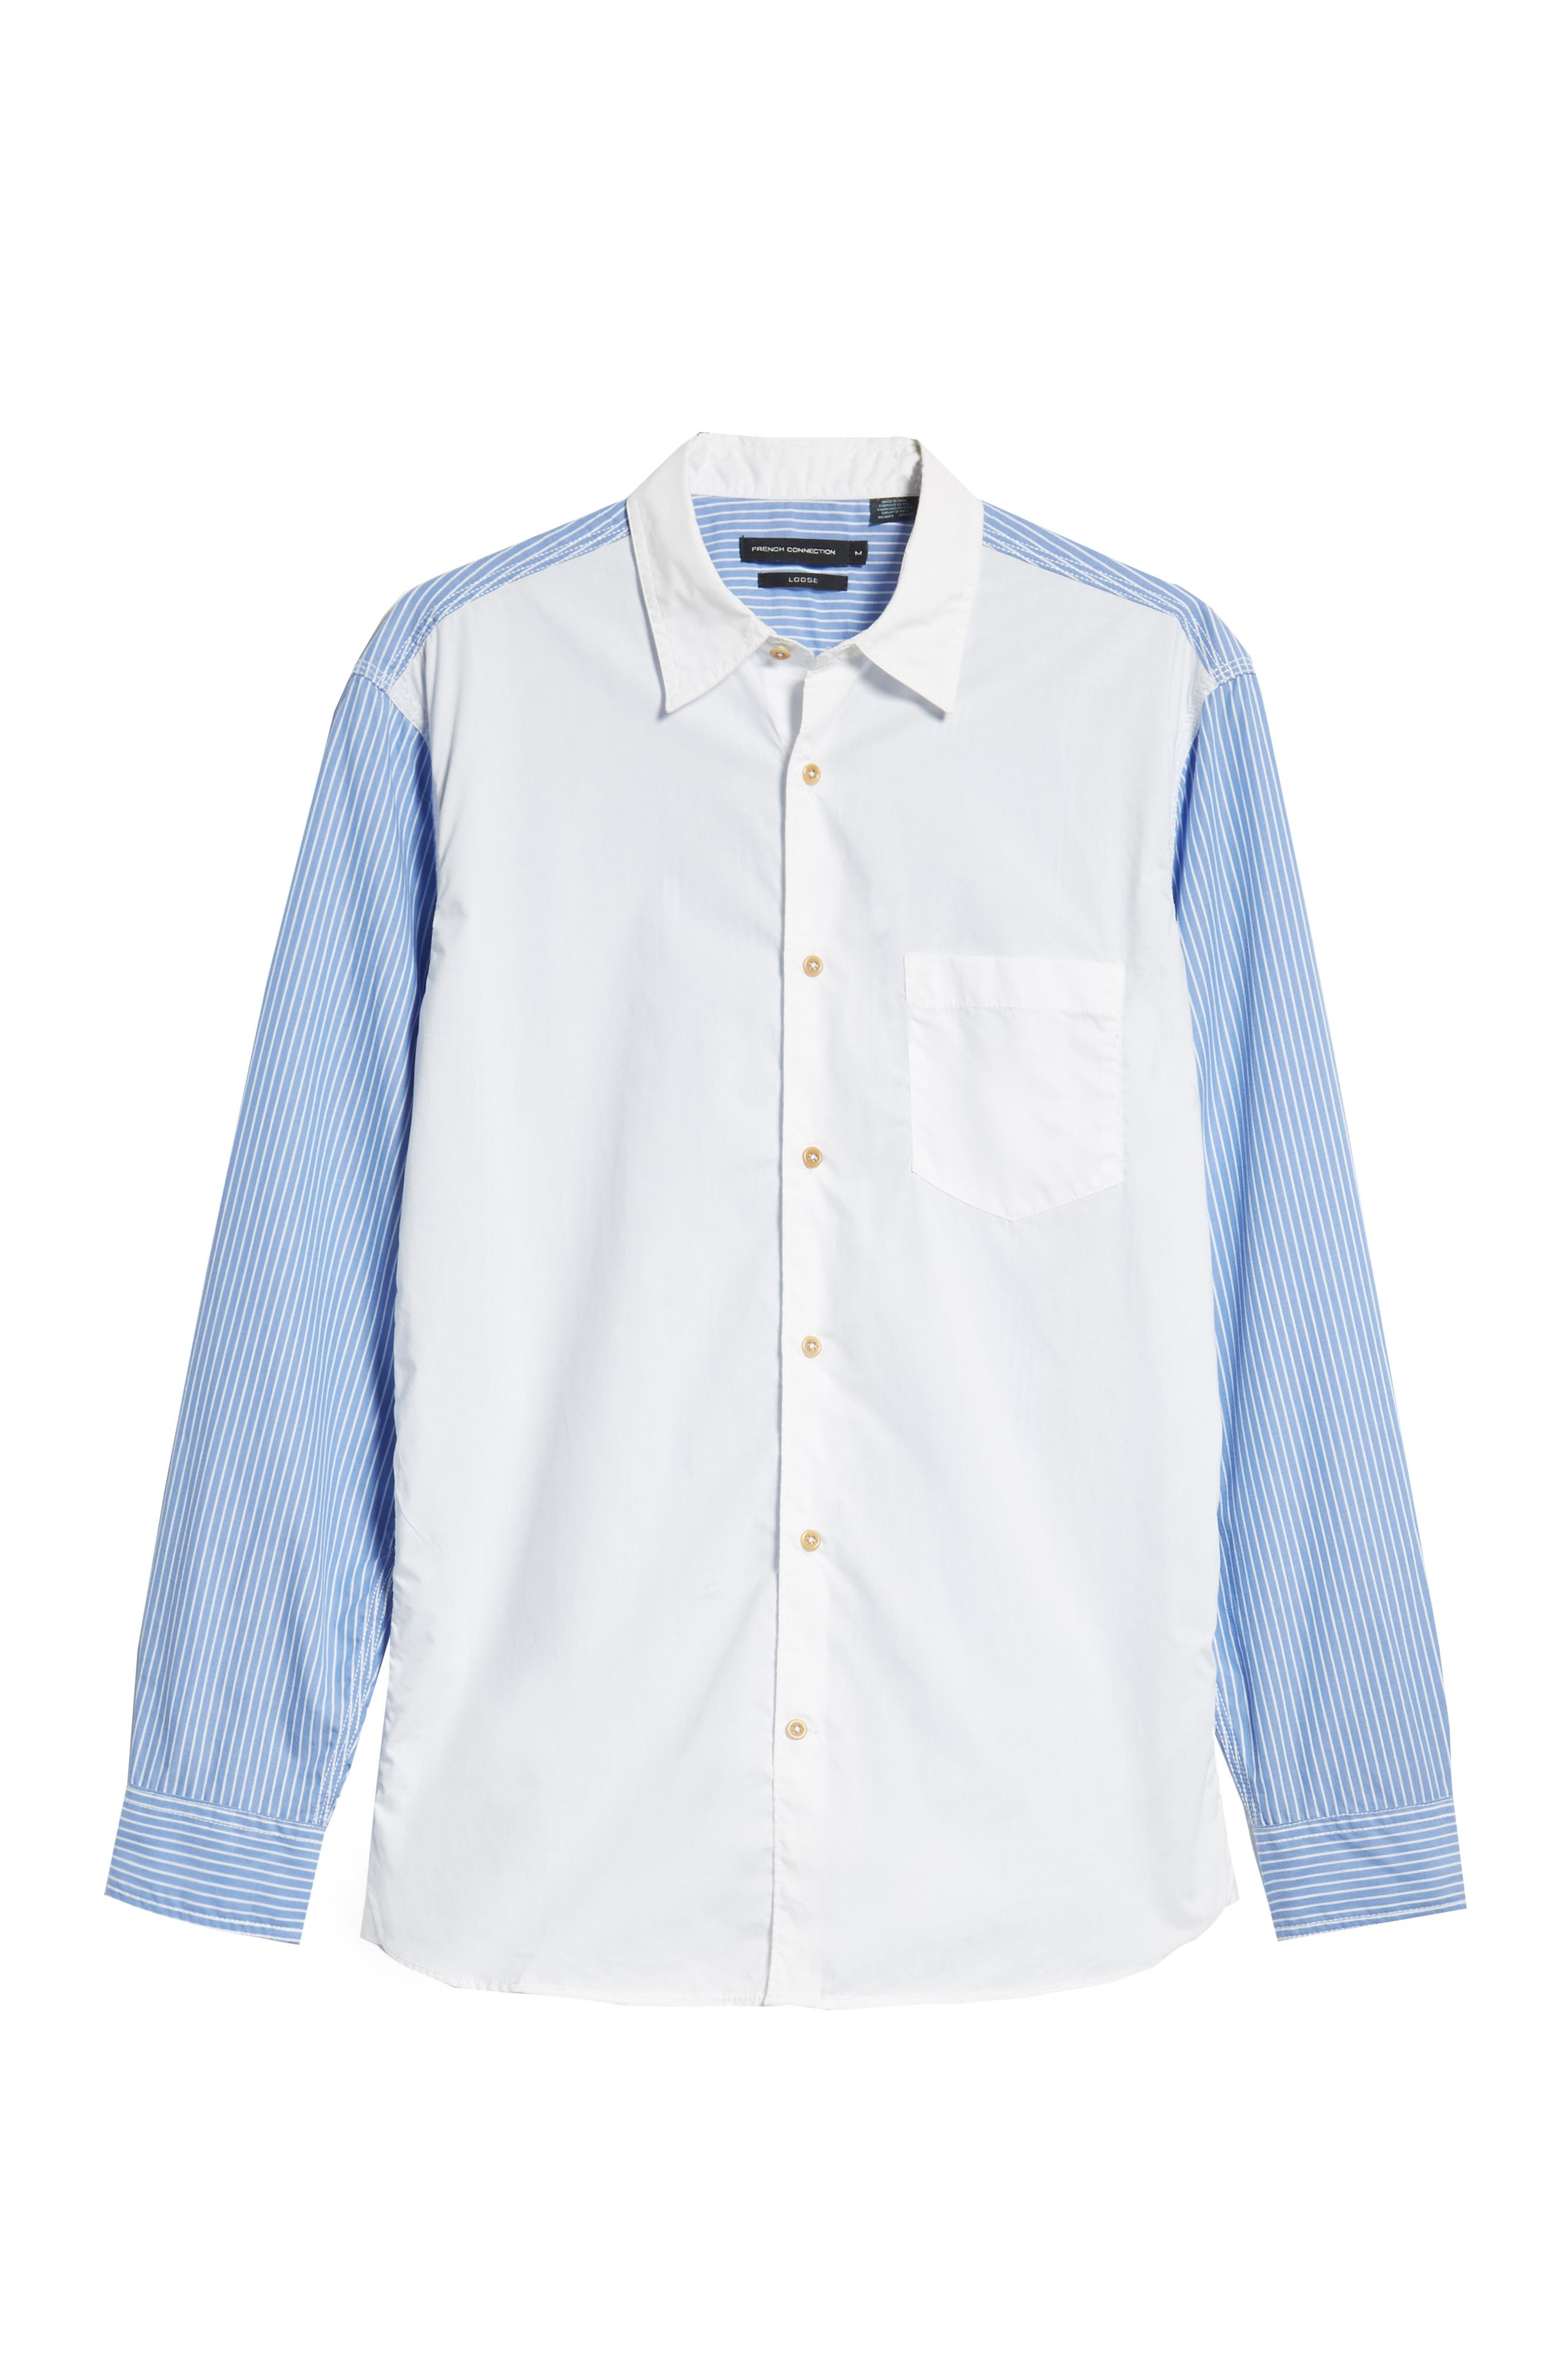 Stripe Hybrid Sport Shirt,                             Alternate thumbnail 6, color,                             WHITE RICH BLUE